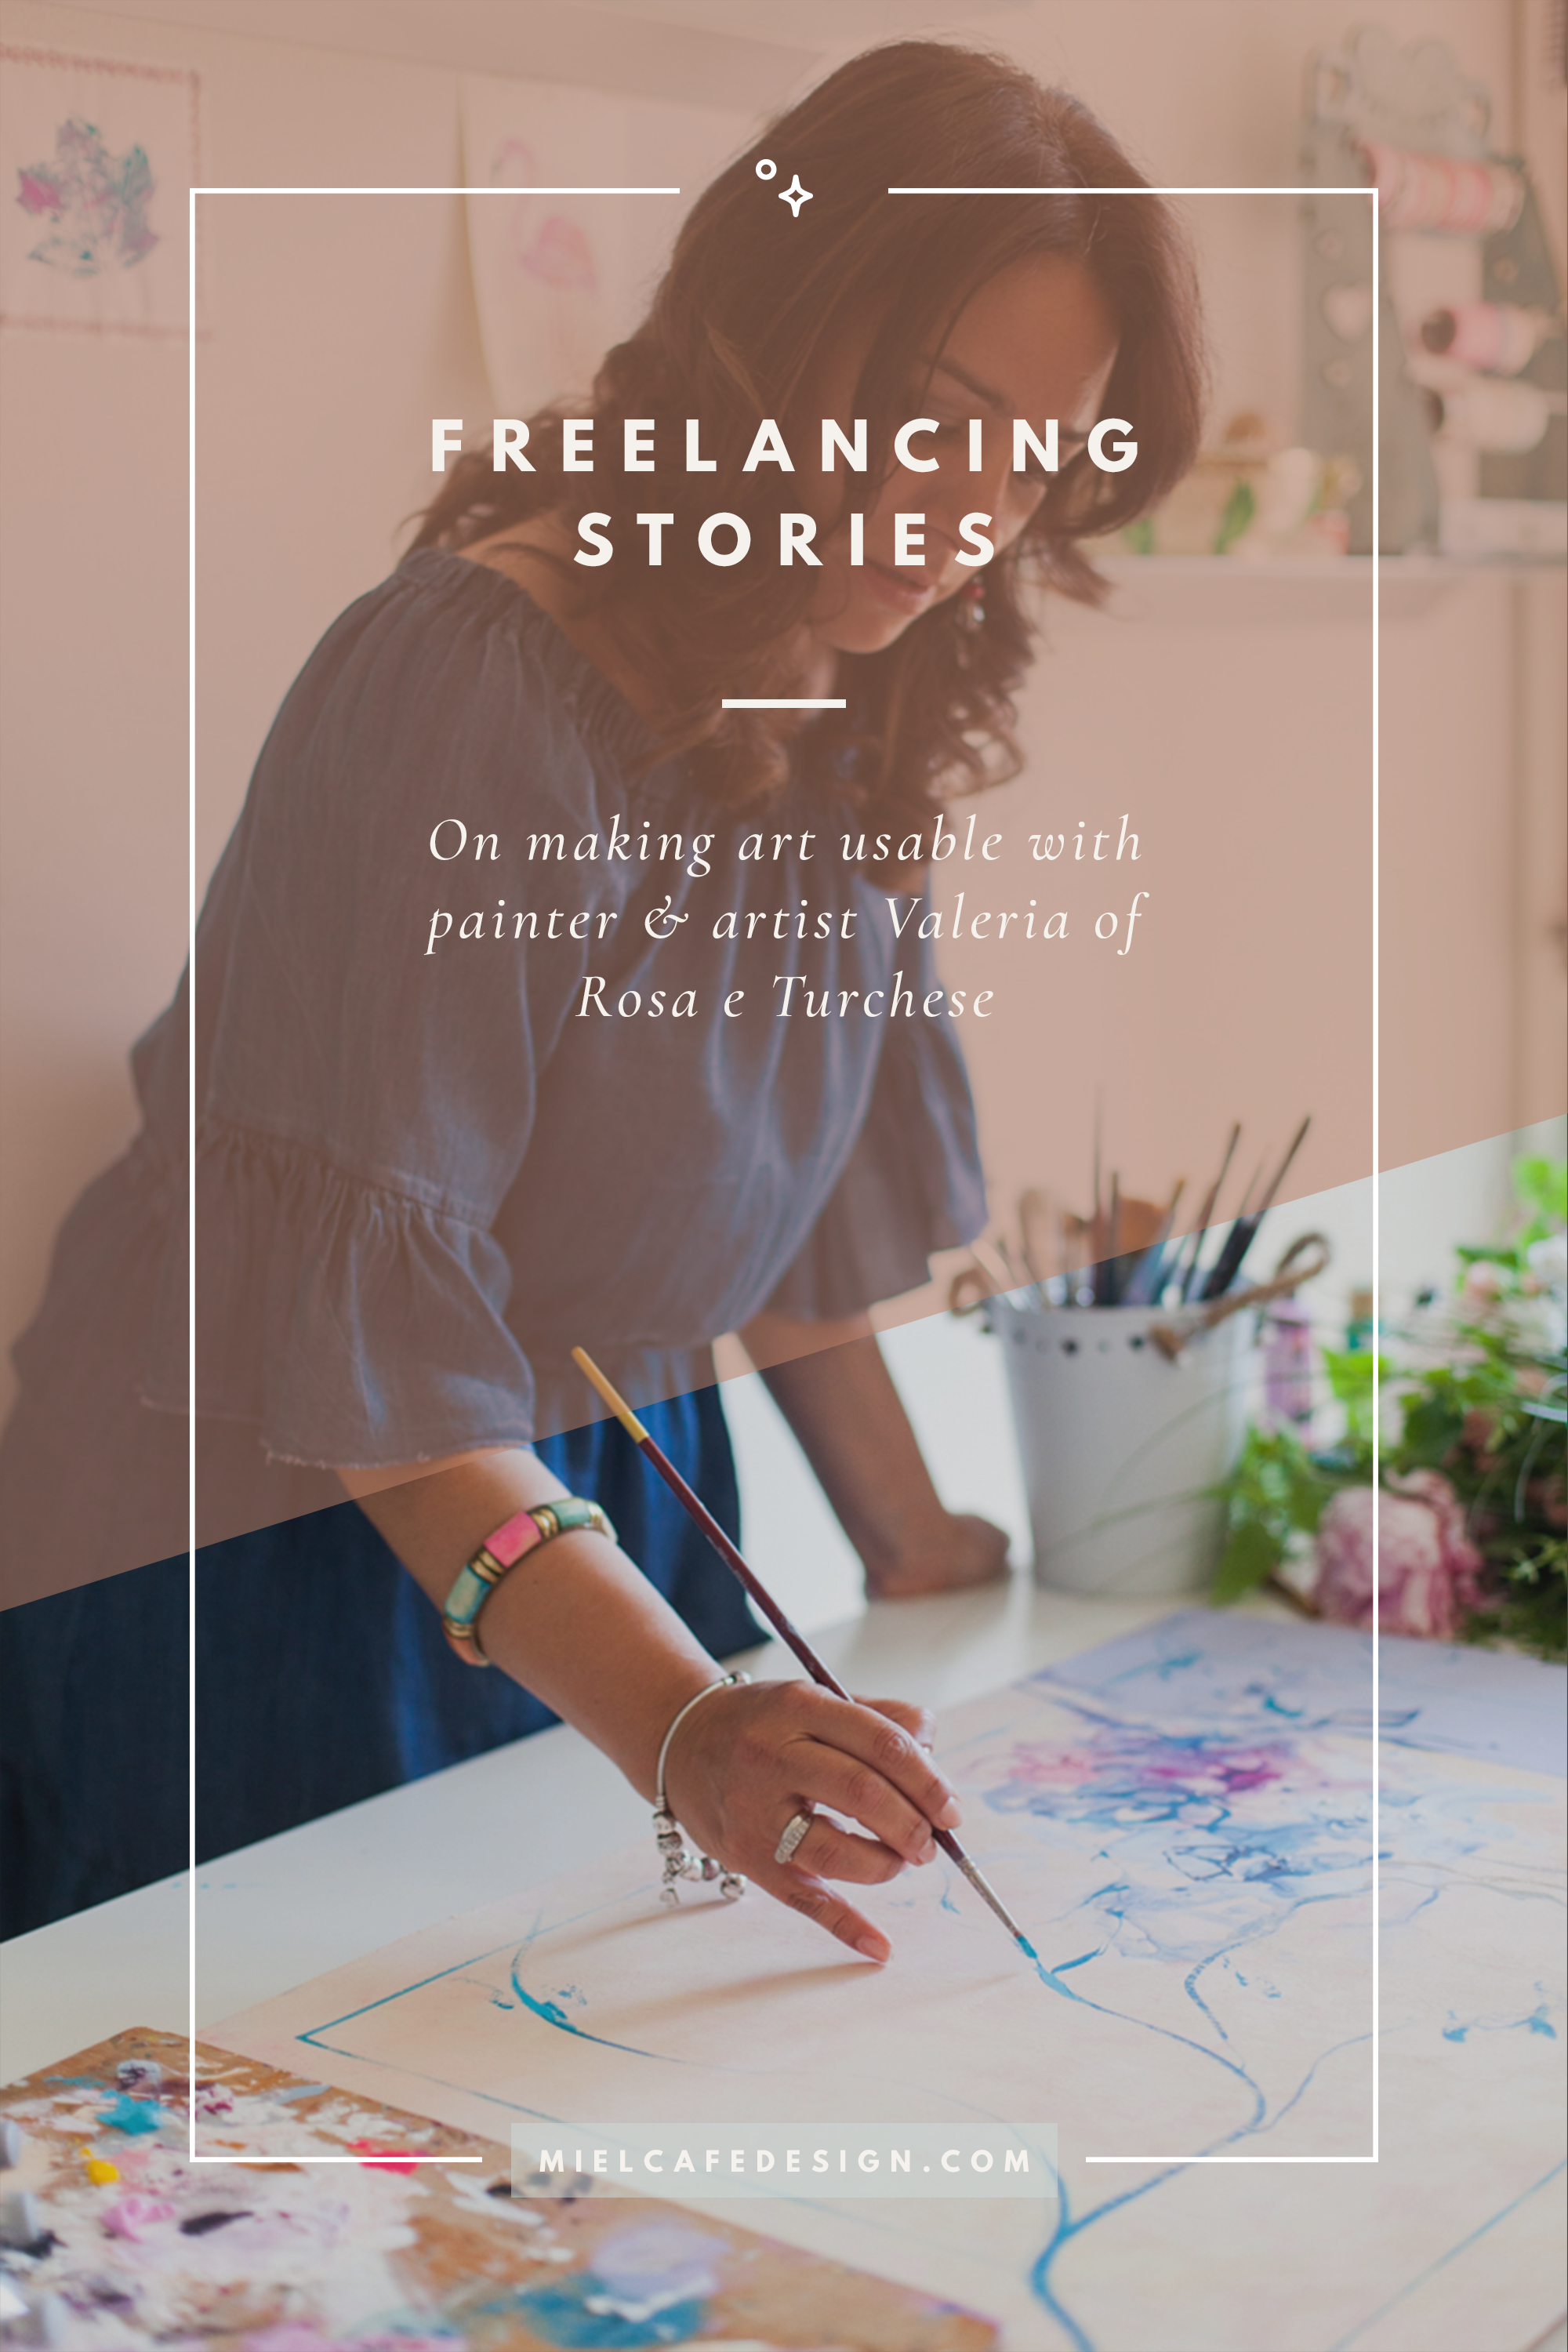 Freelancing Stories: 'How I Make Art Usable' with painter & artist Valeria of Rosa e Turchese